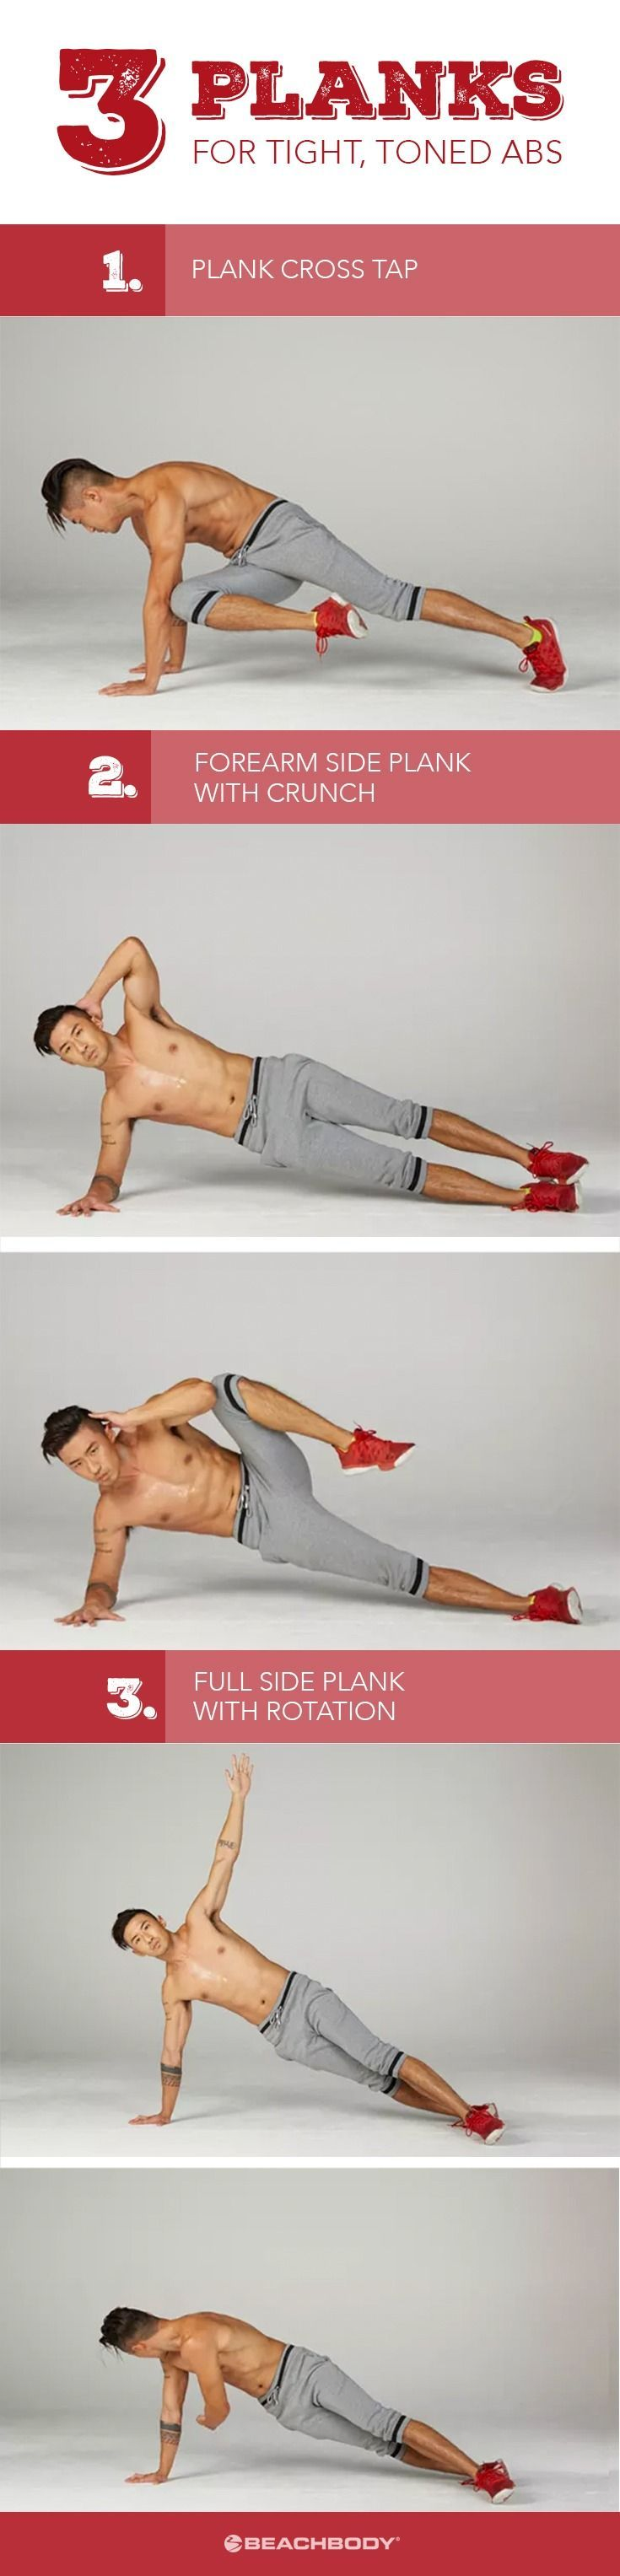 Plank exercises // The plank is one of the best overall core conditioners around, and unlike crunches, it keeps your spine protected in a neutral position